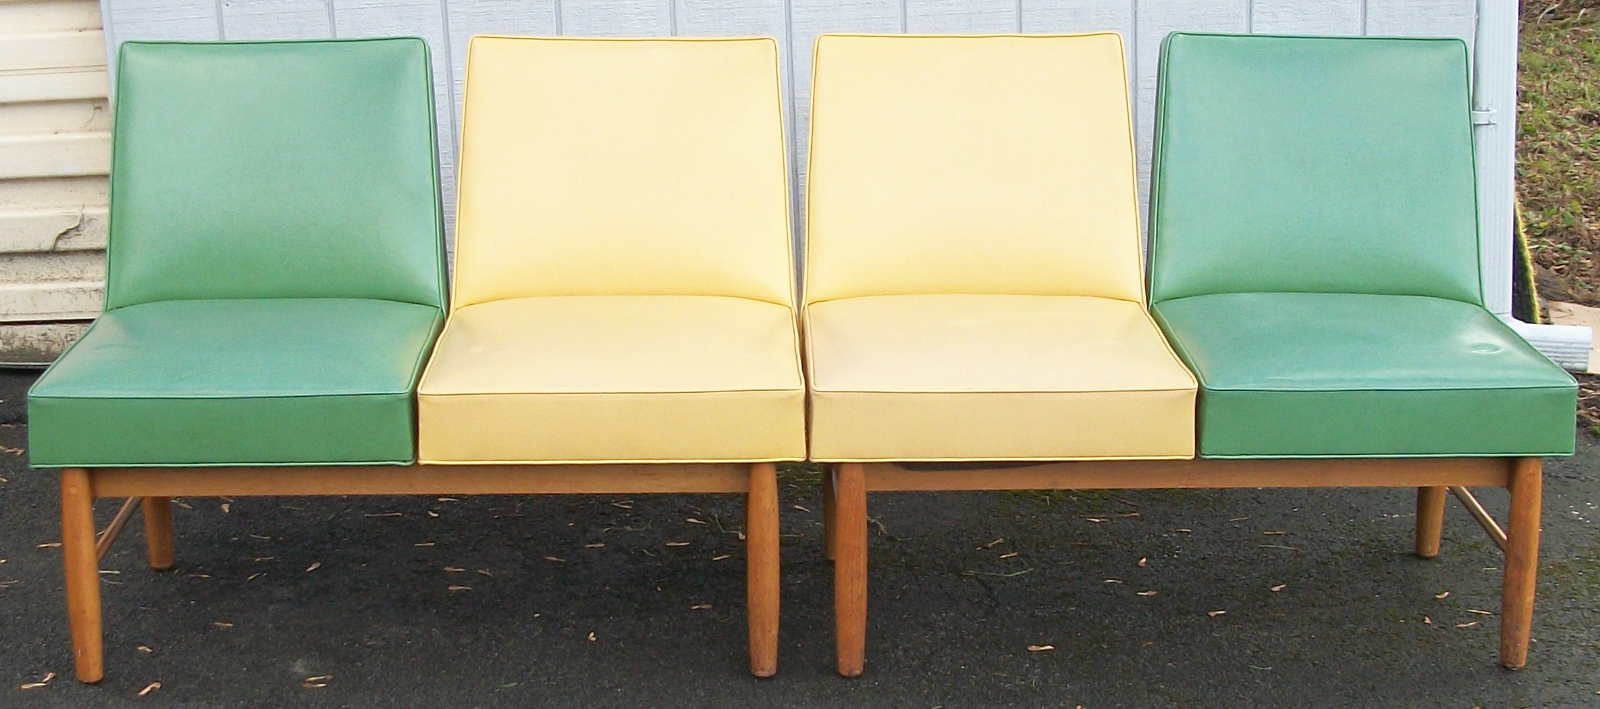 2 Sectional Chairs